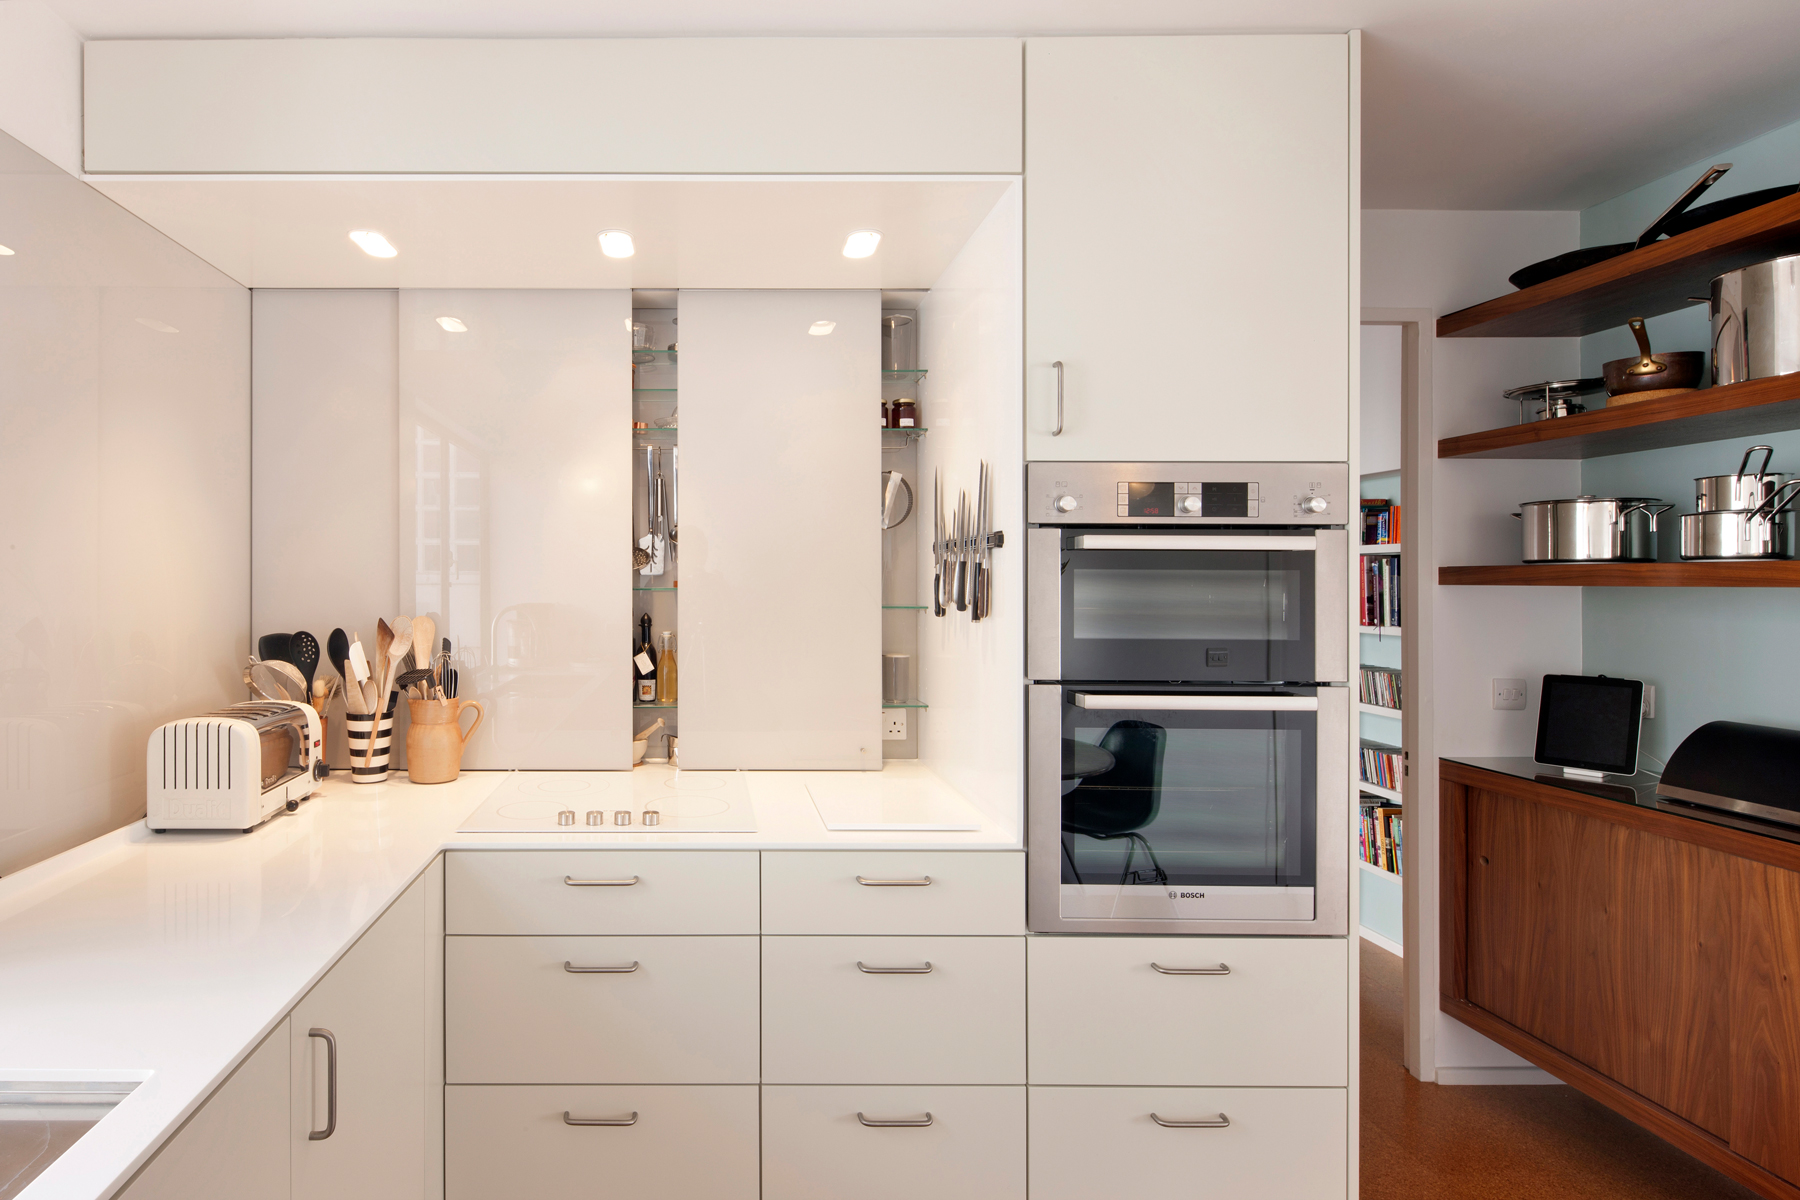 Appliance Garage Cabinets Are Back With A Sophisticated Twist Real Simple